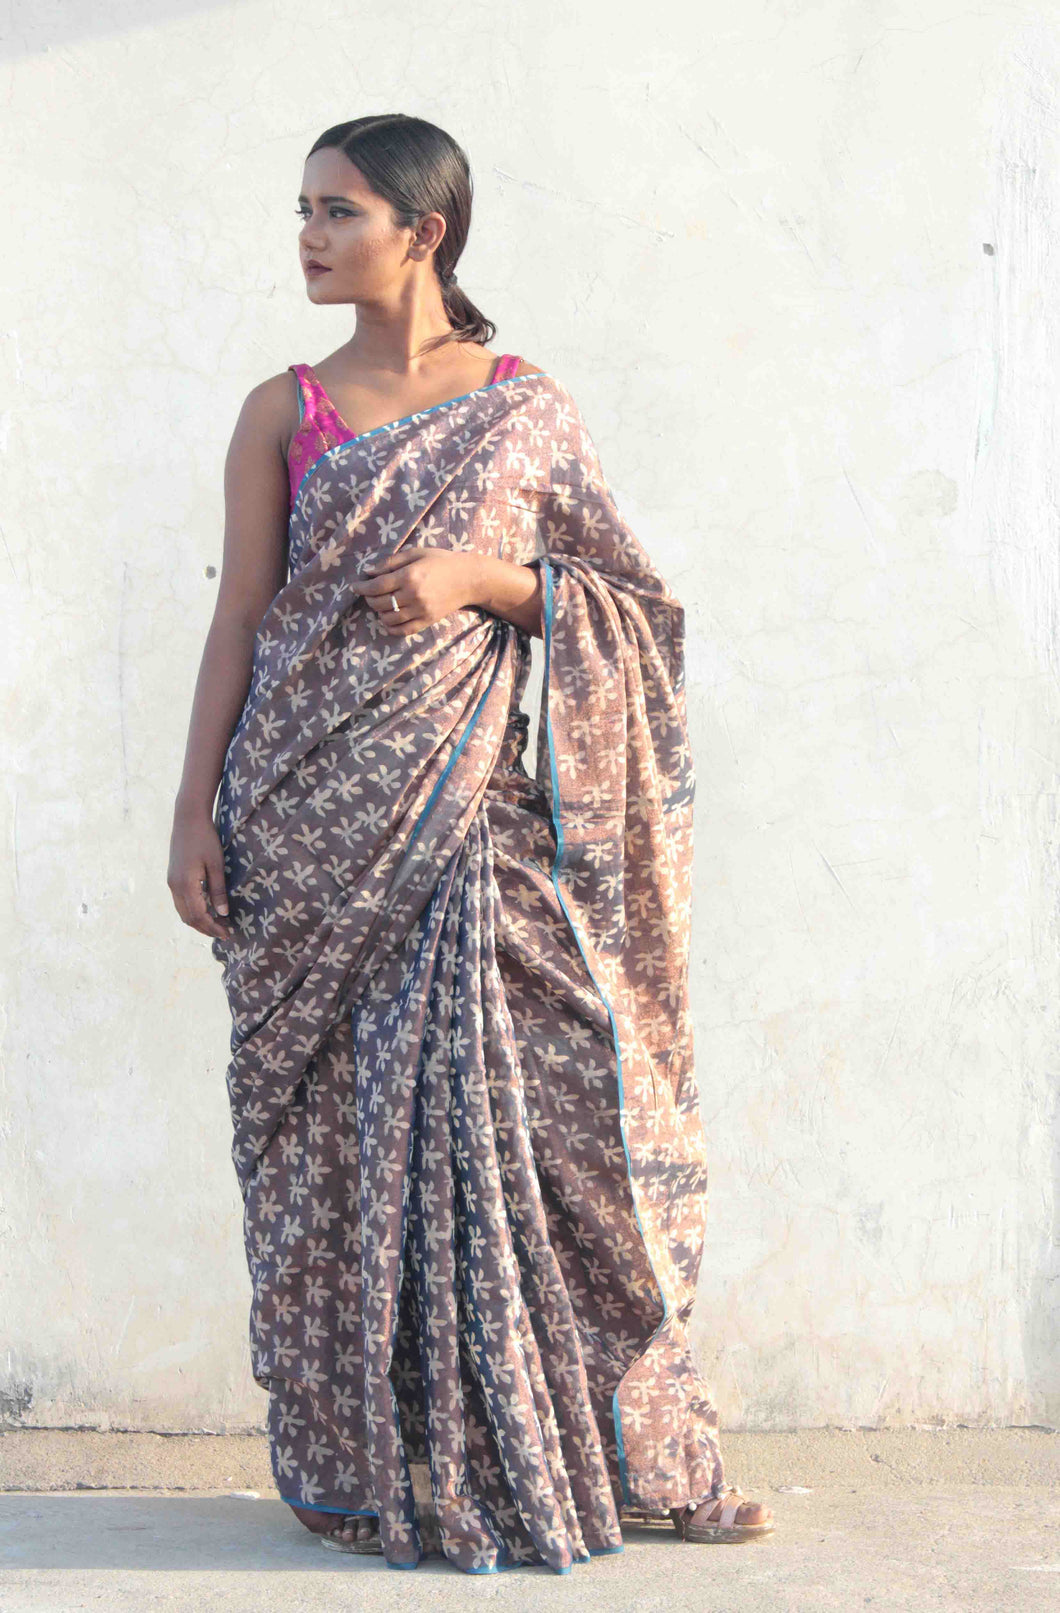 Sulbha | handwoven tissue saree with copper zari and hand block printed floral design